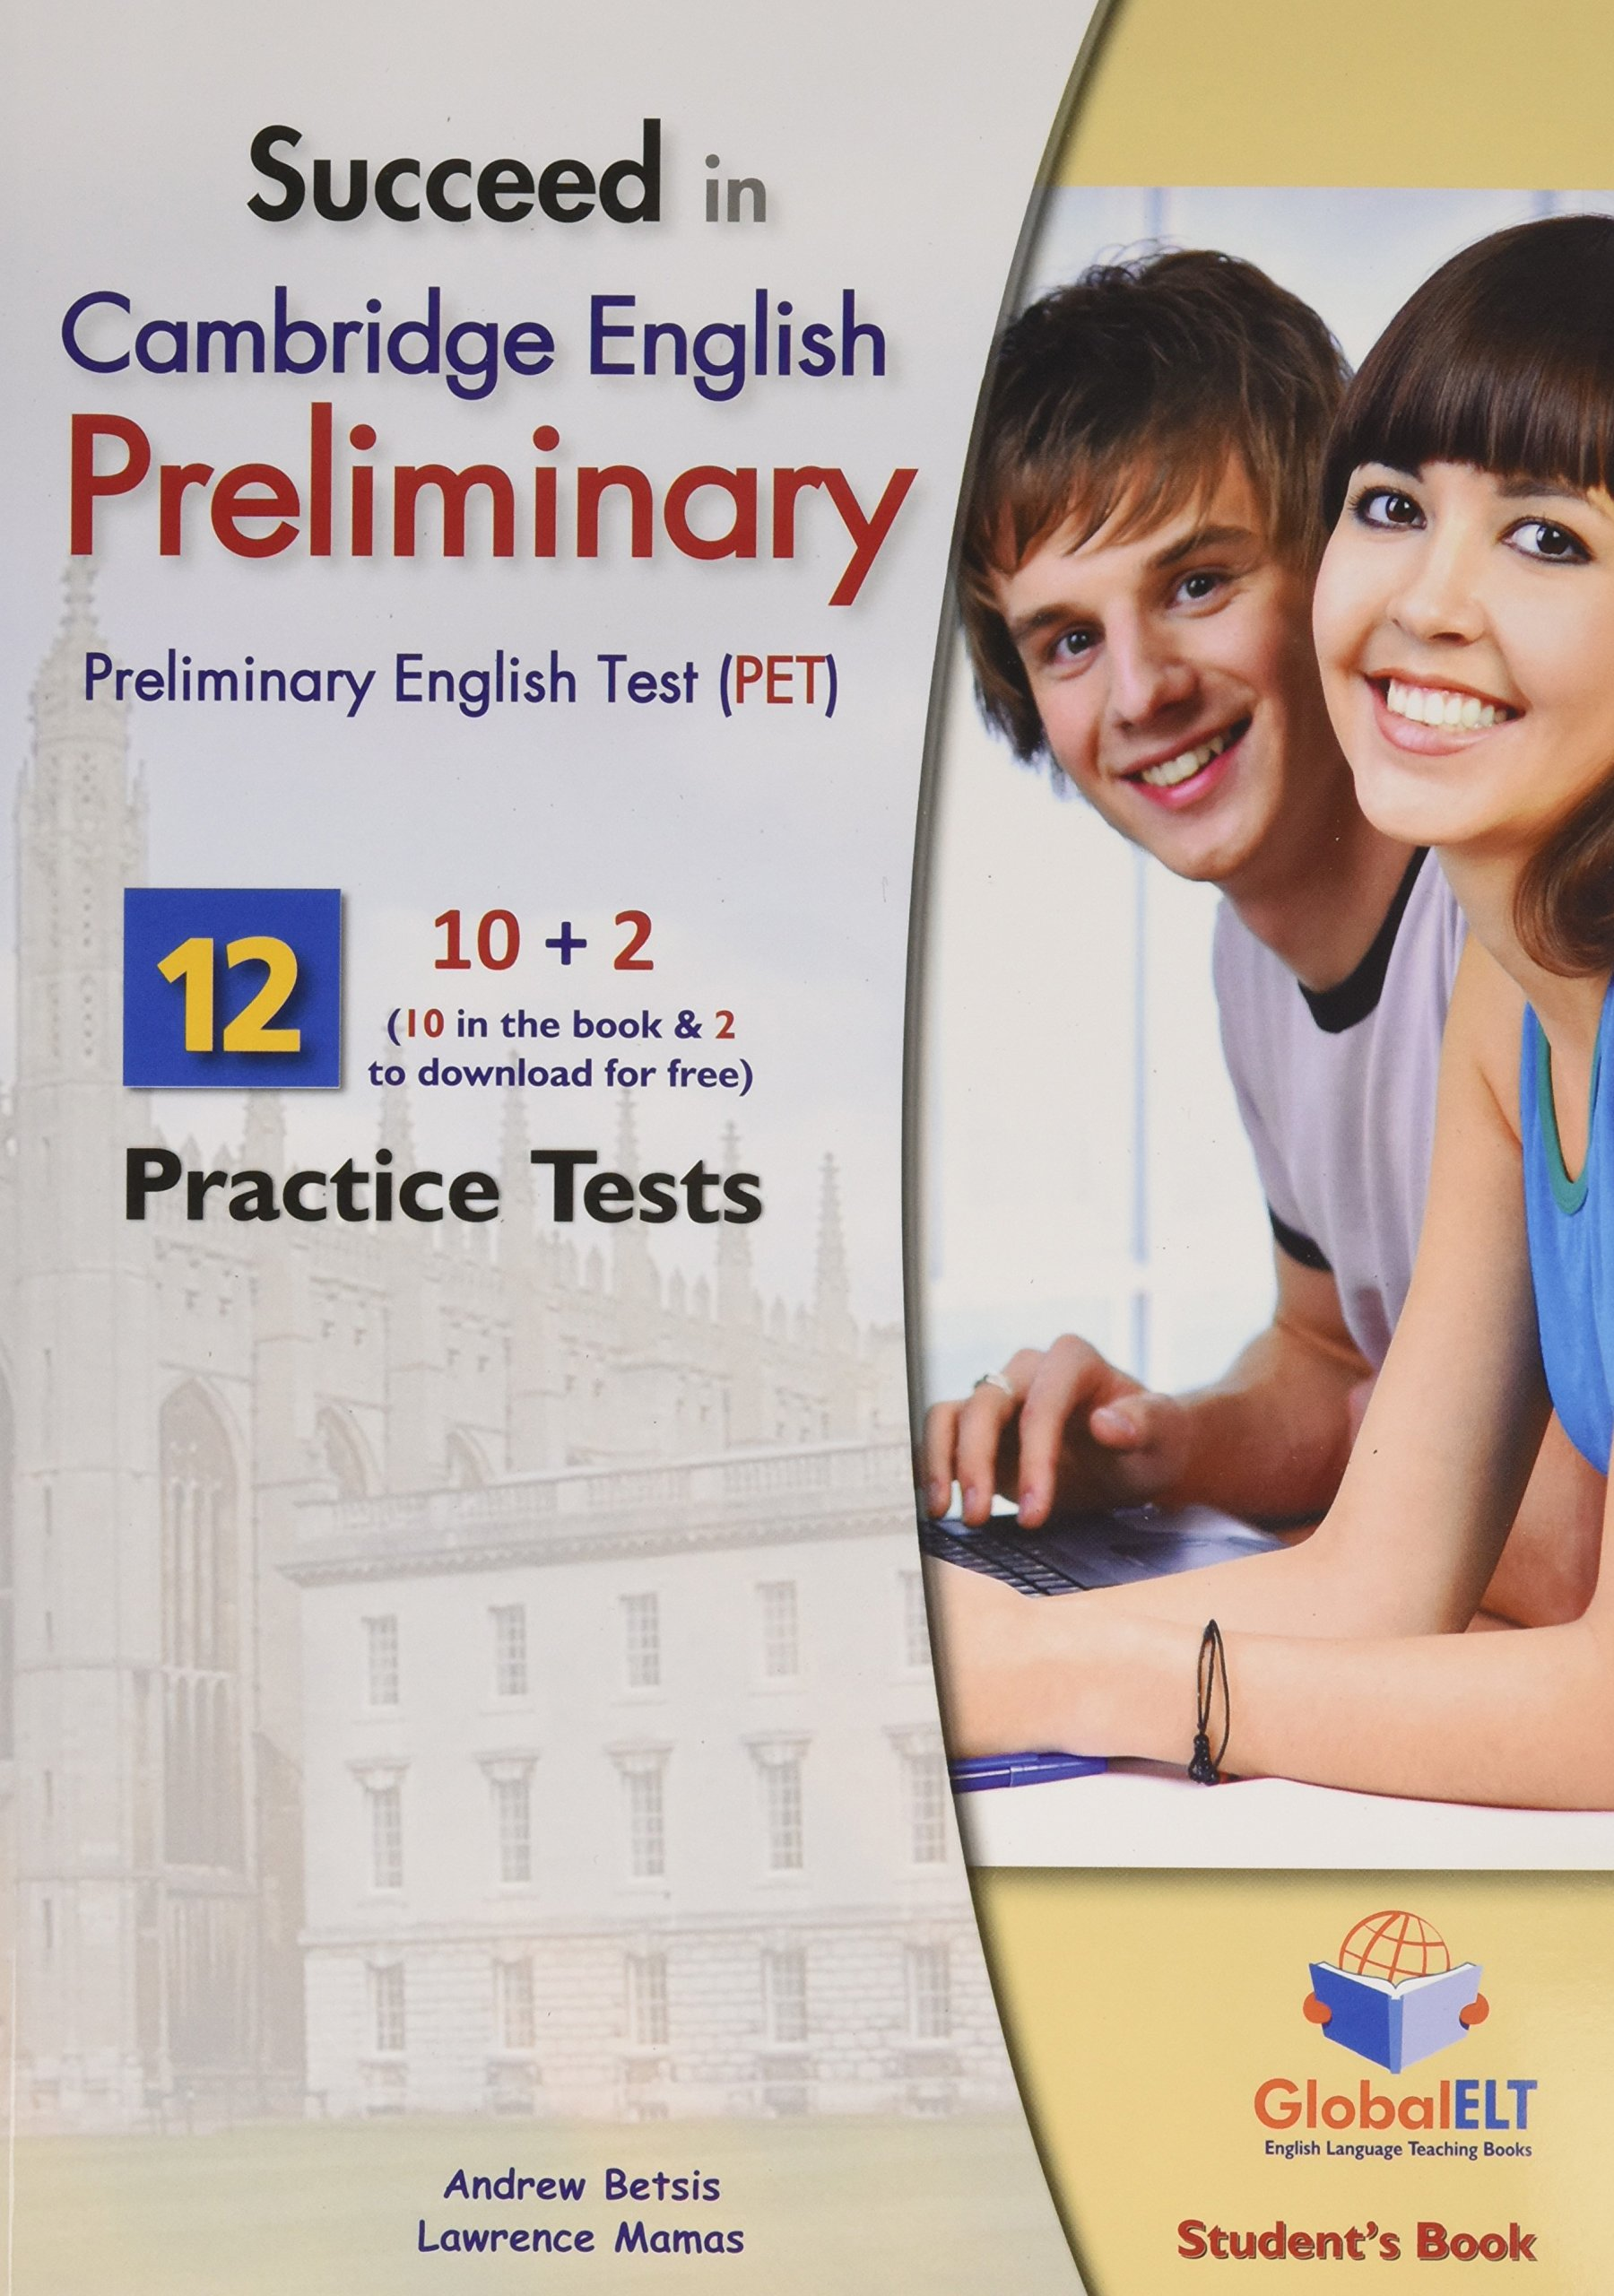 Succeed in cambridge english preliminary (pet) 12 practice tests.